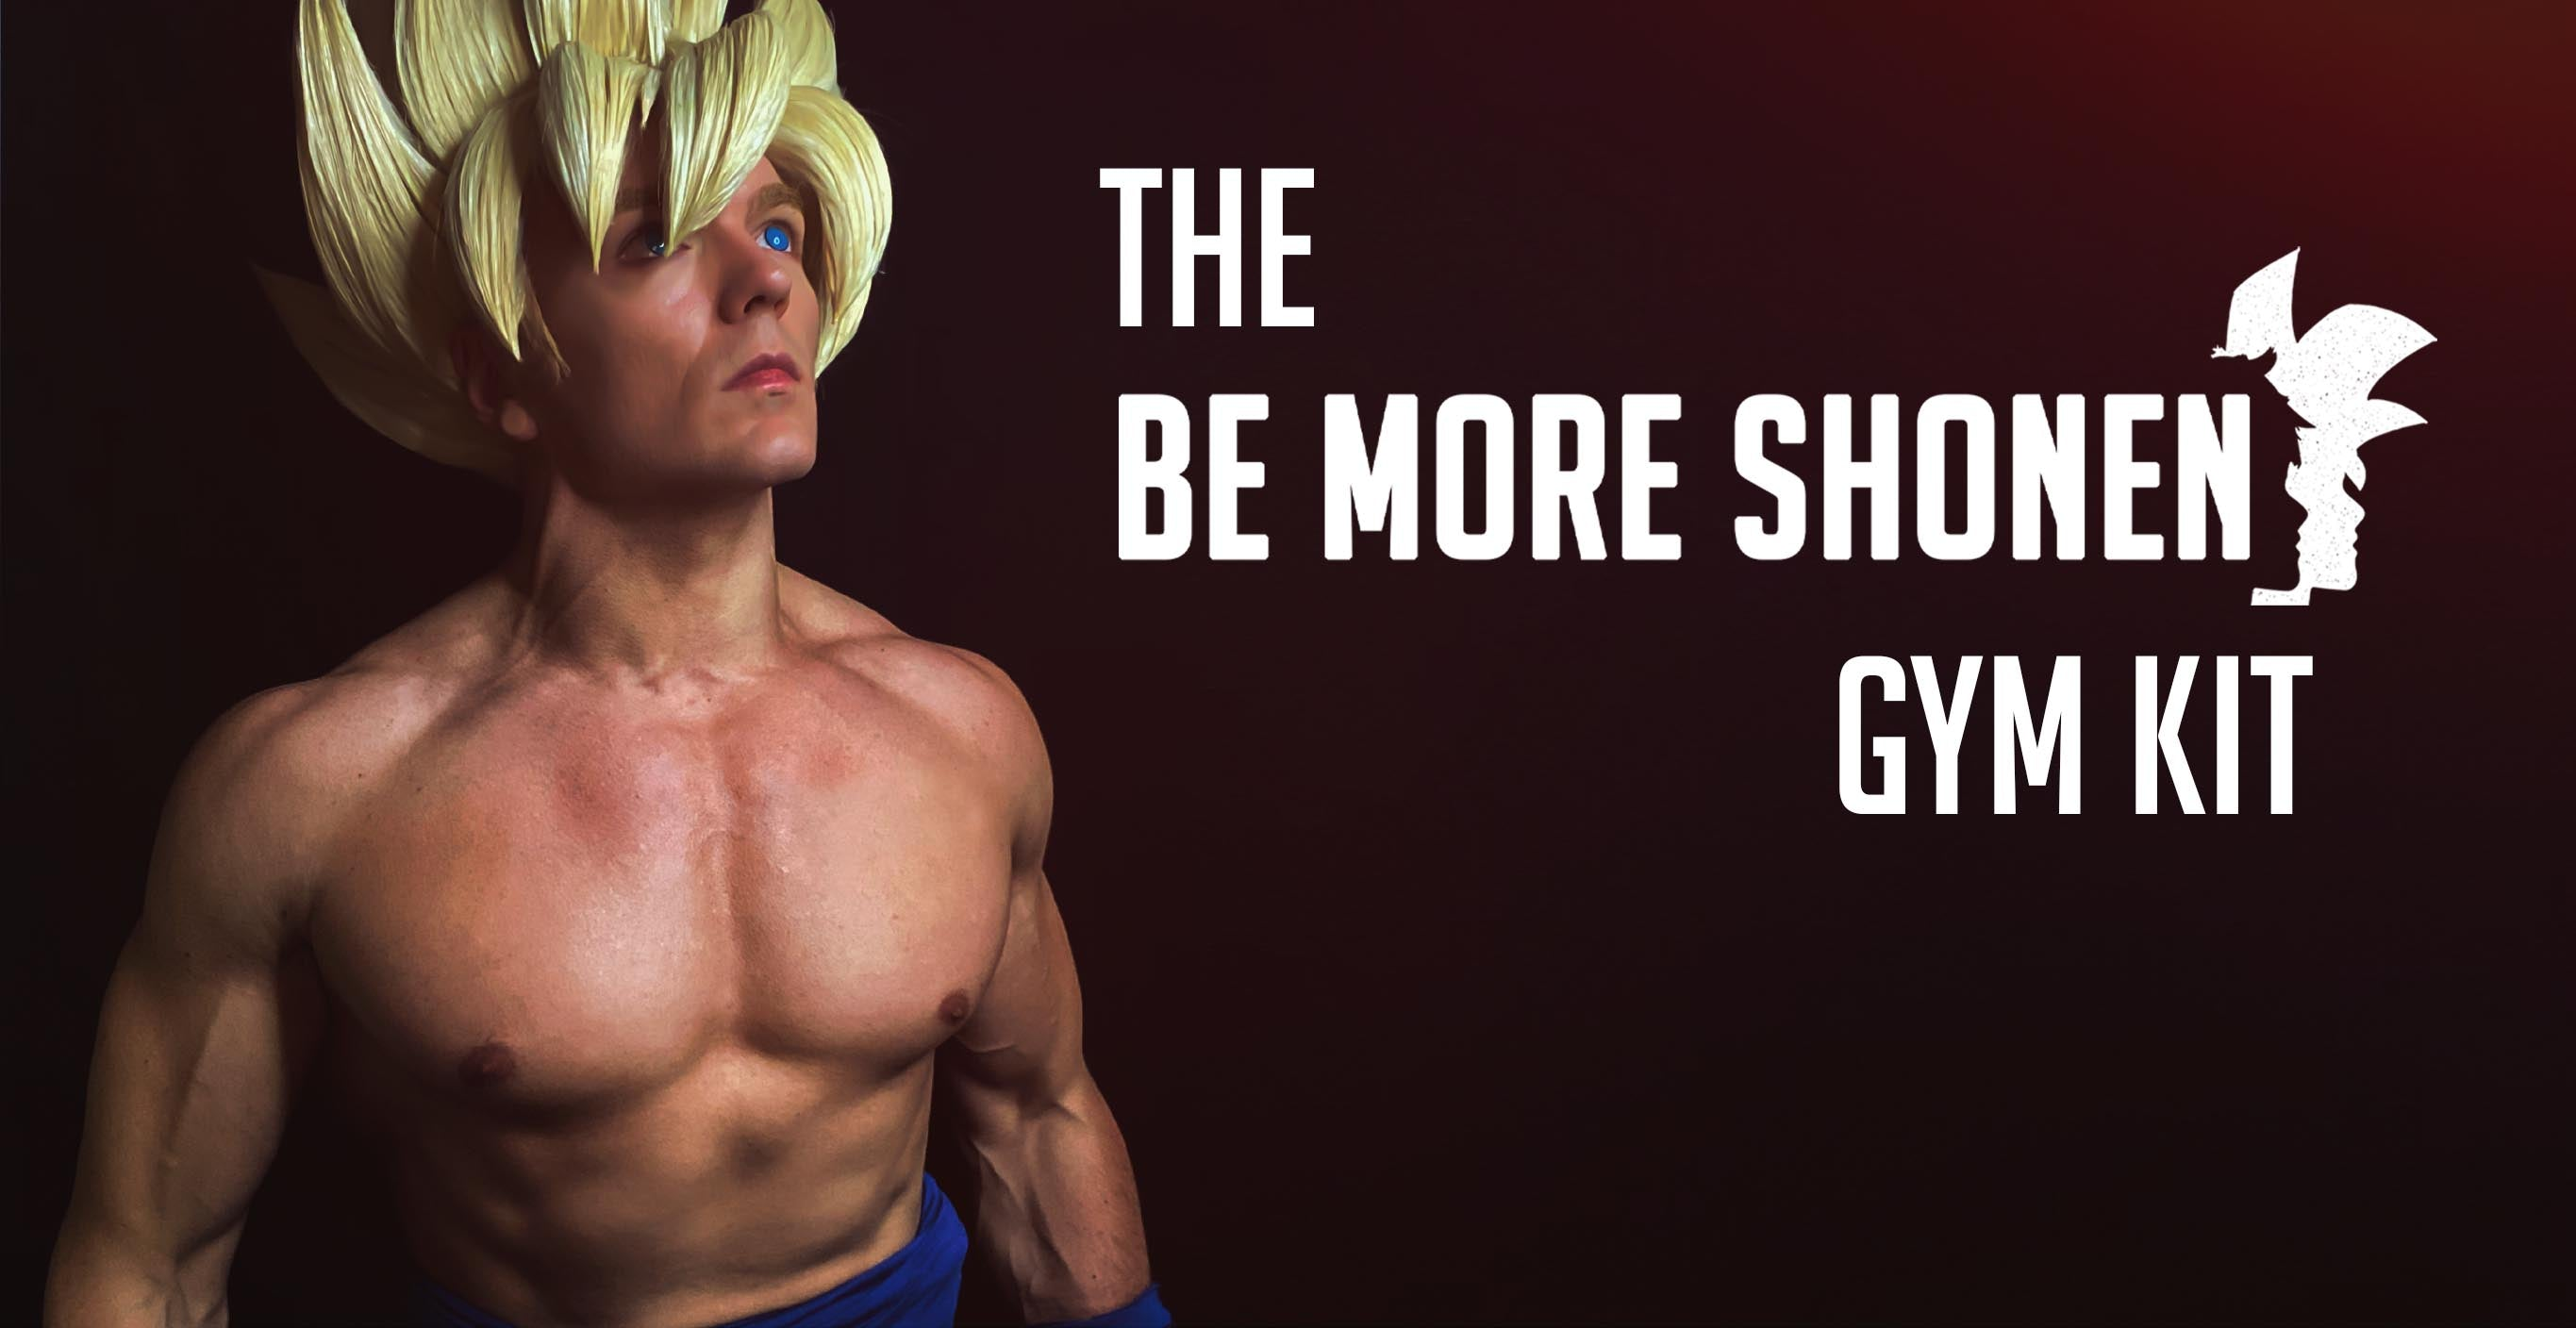 The Be More Shonen beginners gym kit for anime fans and cosplayers